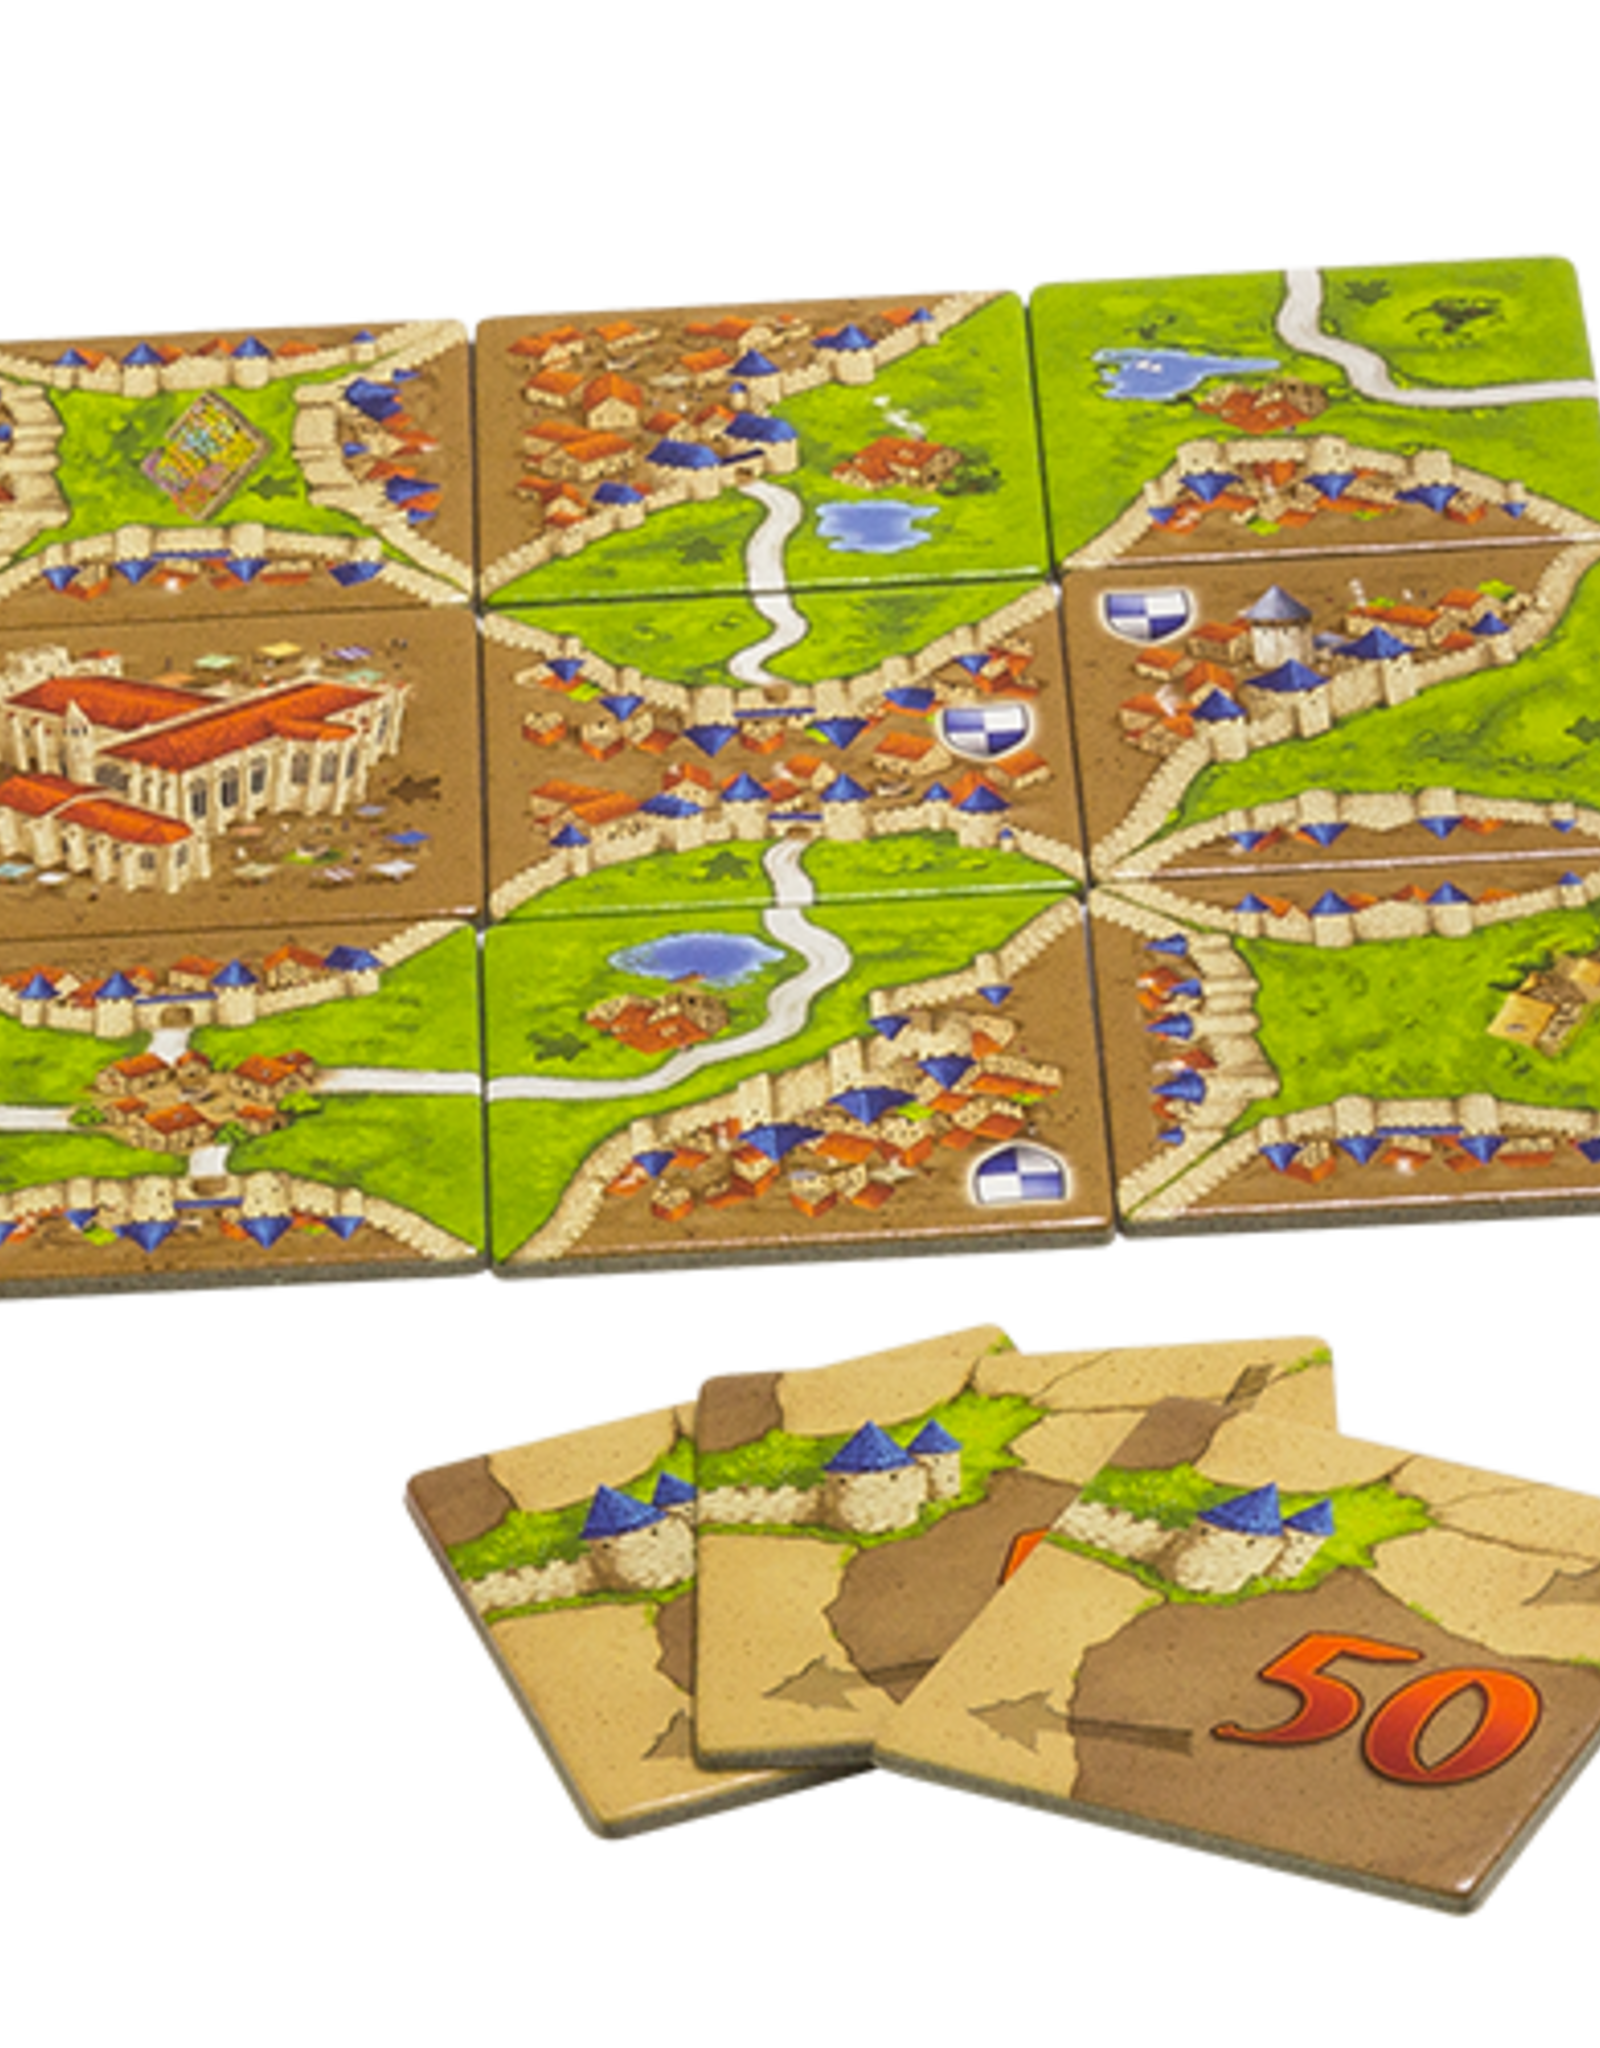 Carcassonne Expansion 1 Inns and Cathedrals